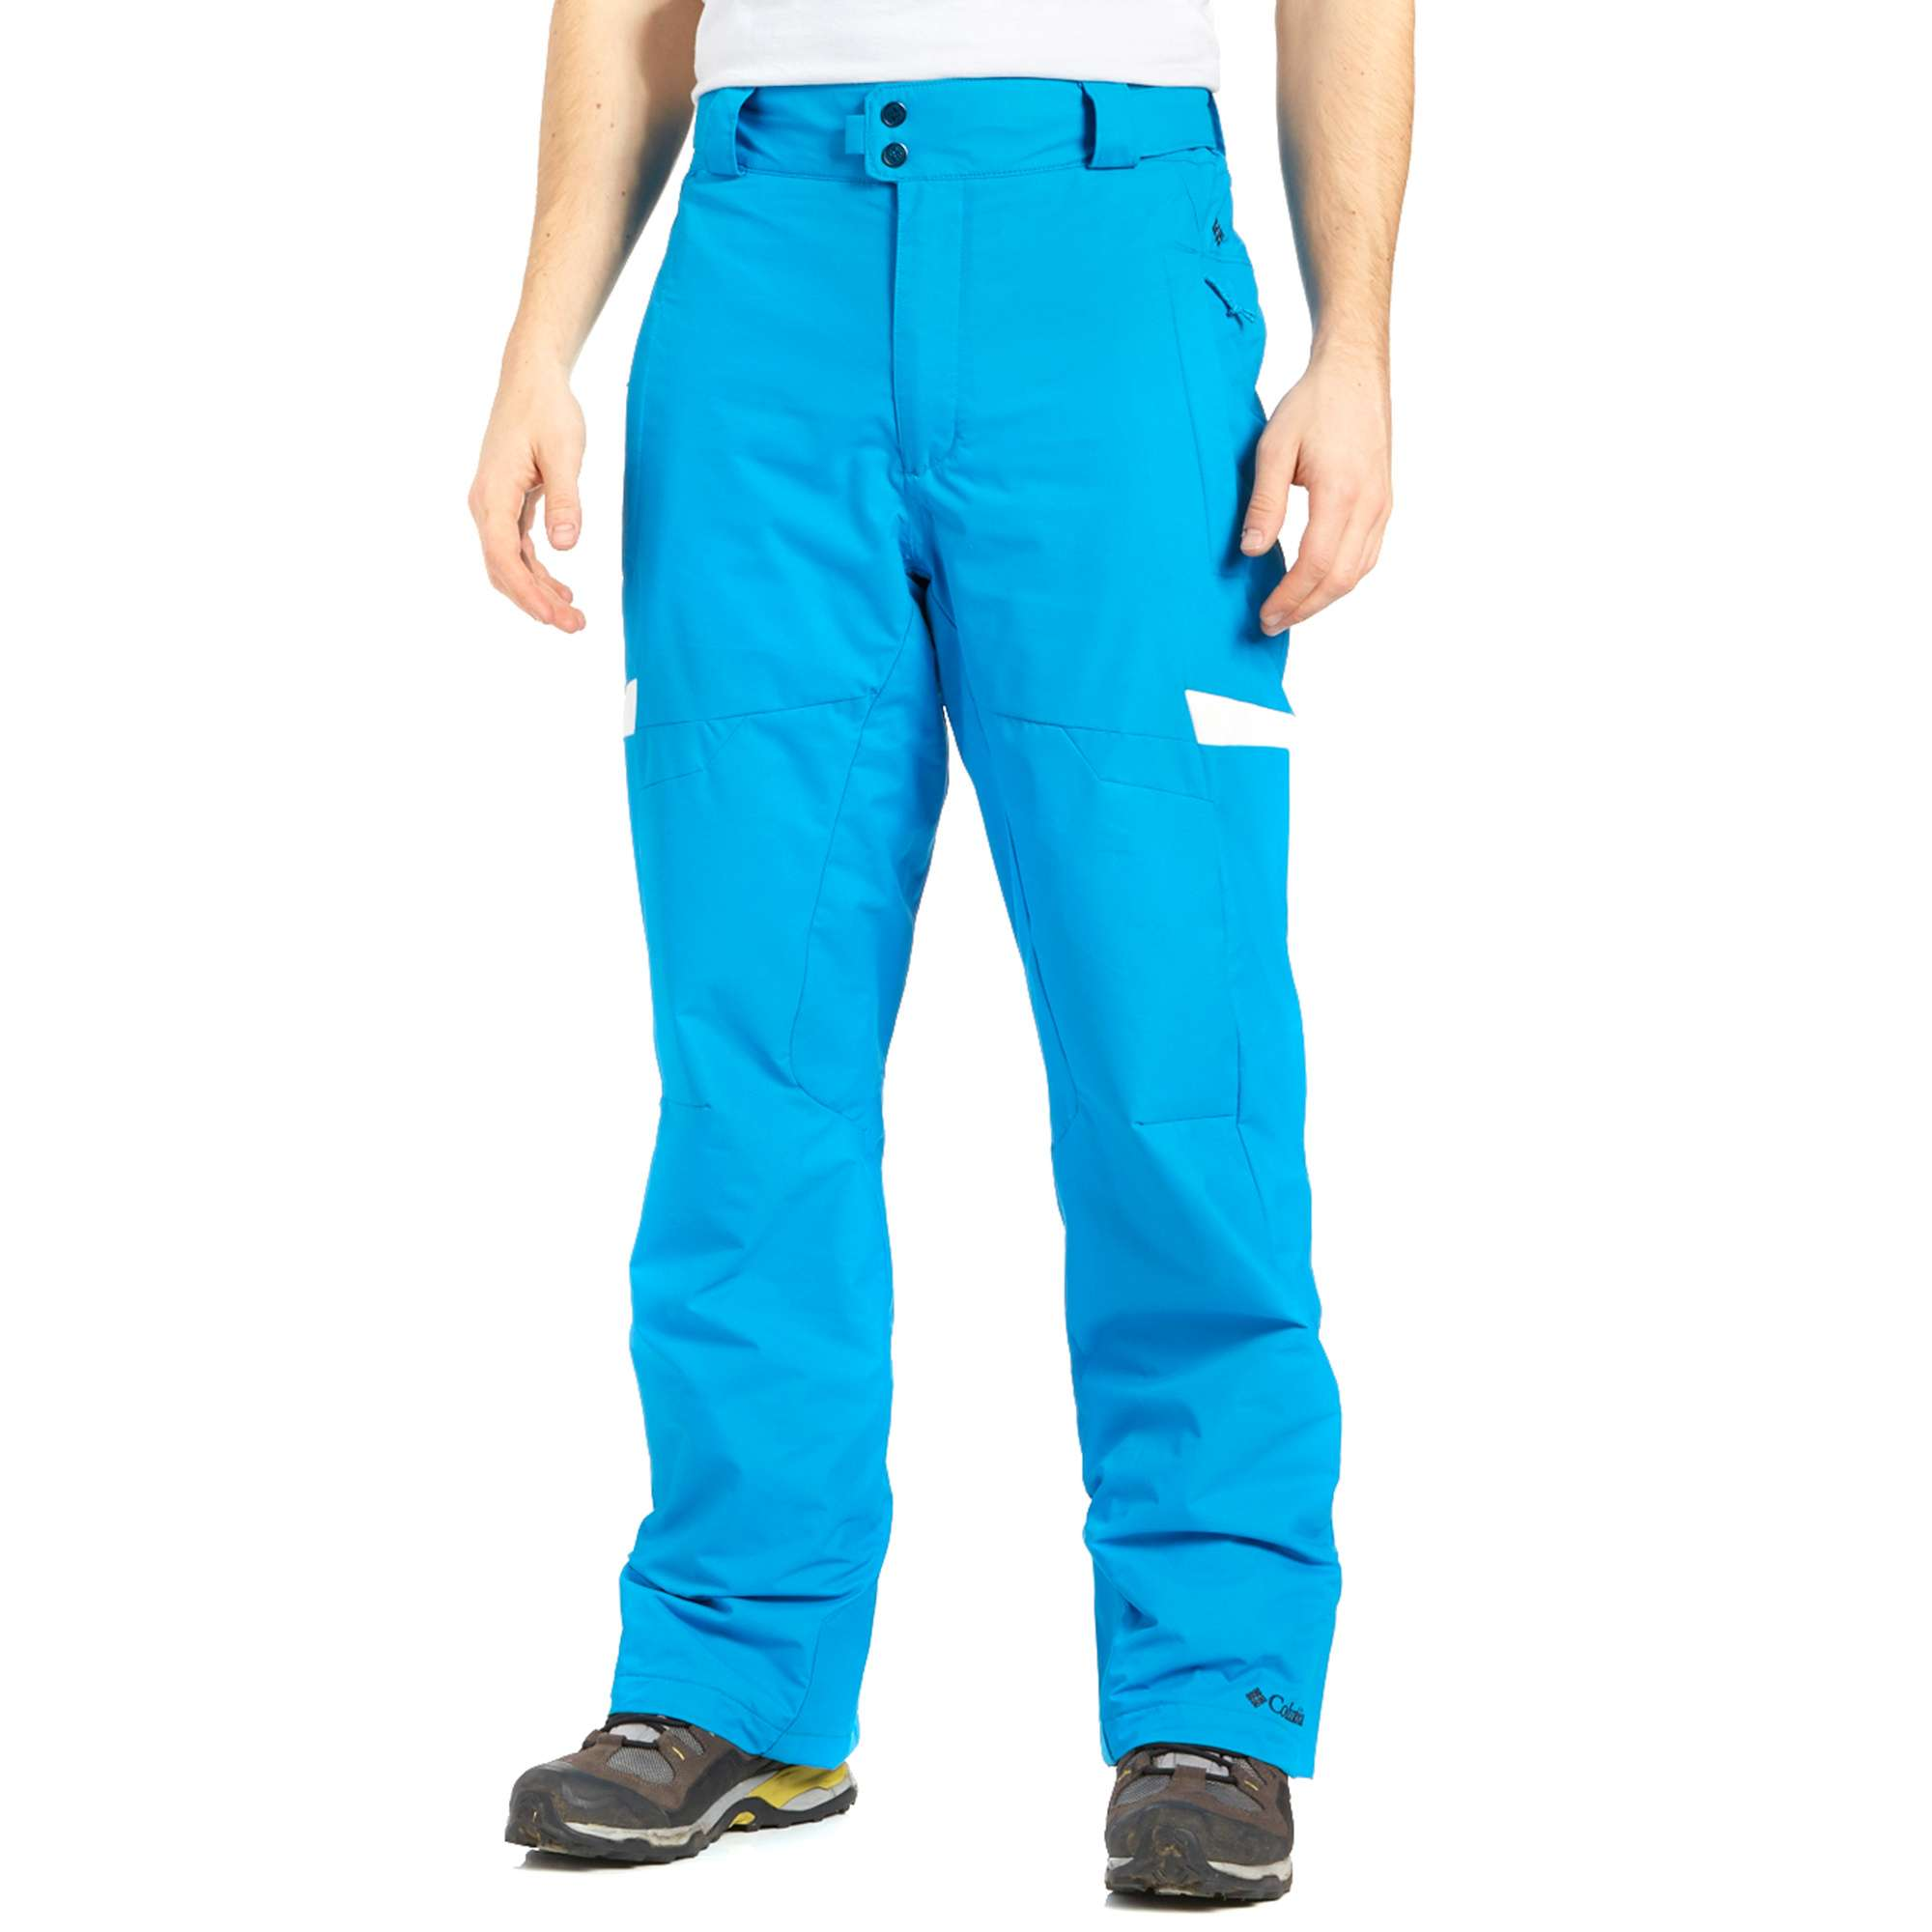 COLUMBIA Men's Echochrome Ski Pants